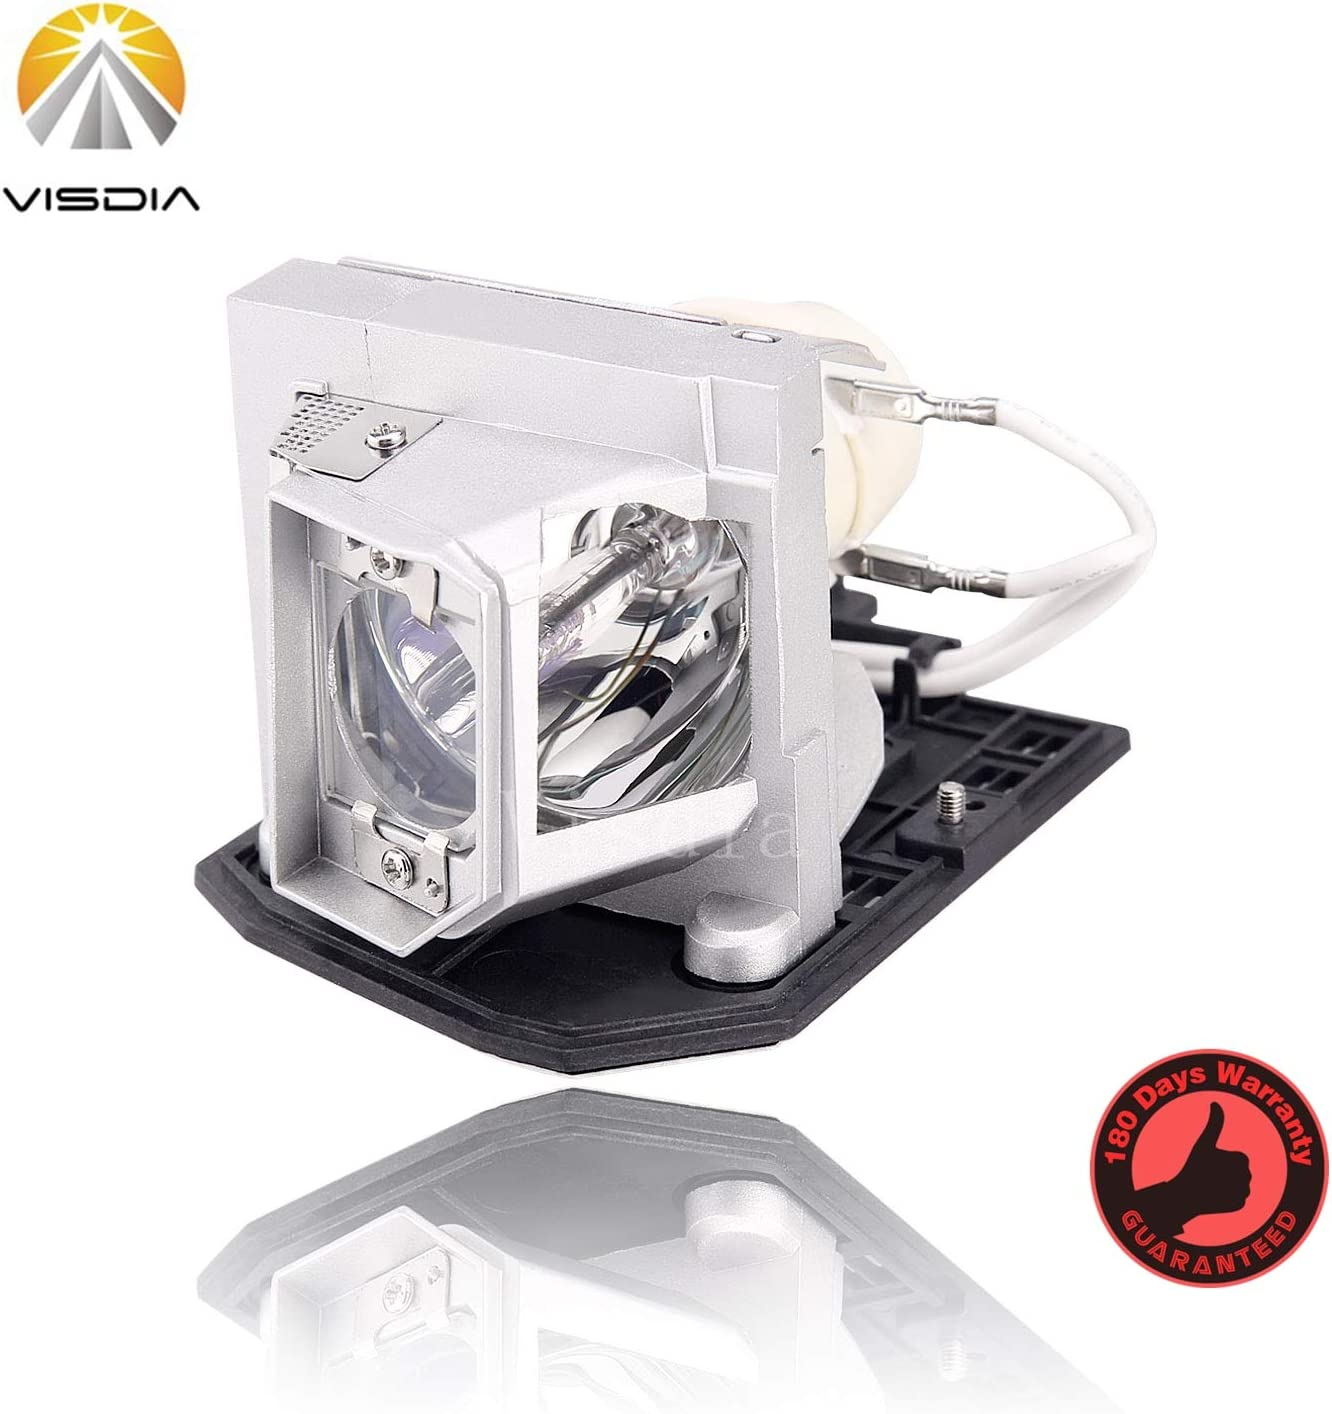 Visdia BL-FU240A Premium Replacement Projector Lamp with Housing for OPTOMA HD25-LV HD25 DH1011 EH300 HD131X HD2500 HD30 HD30B Projectors